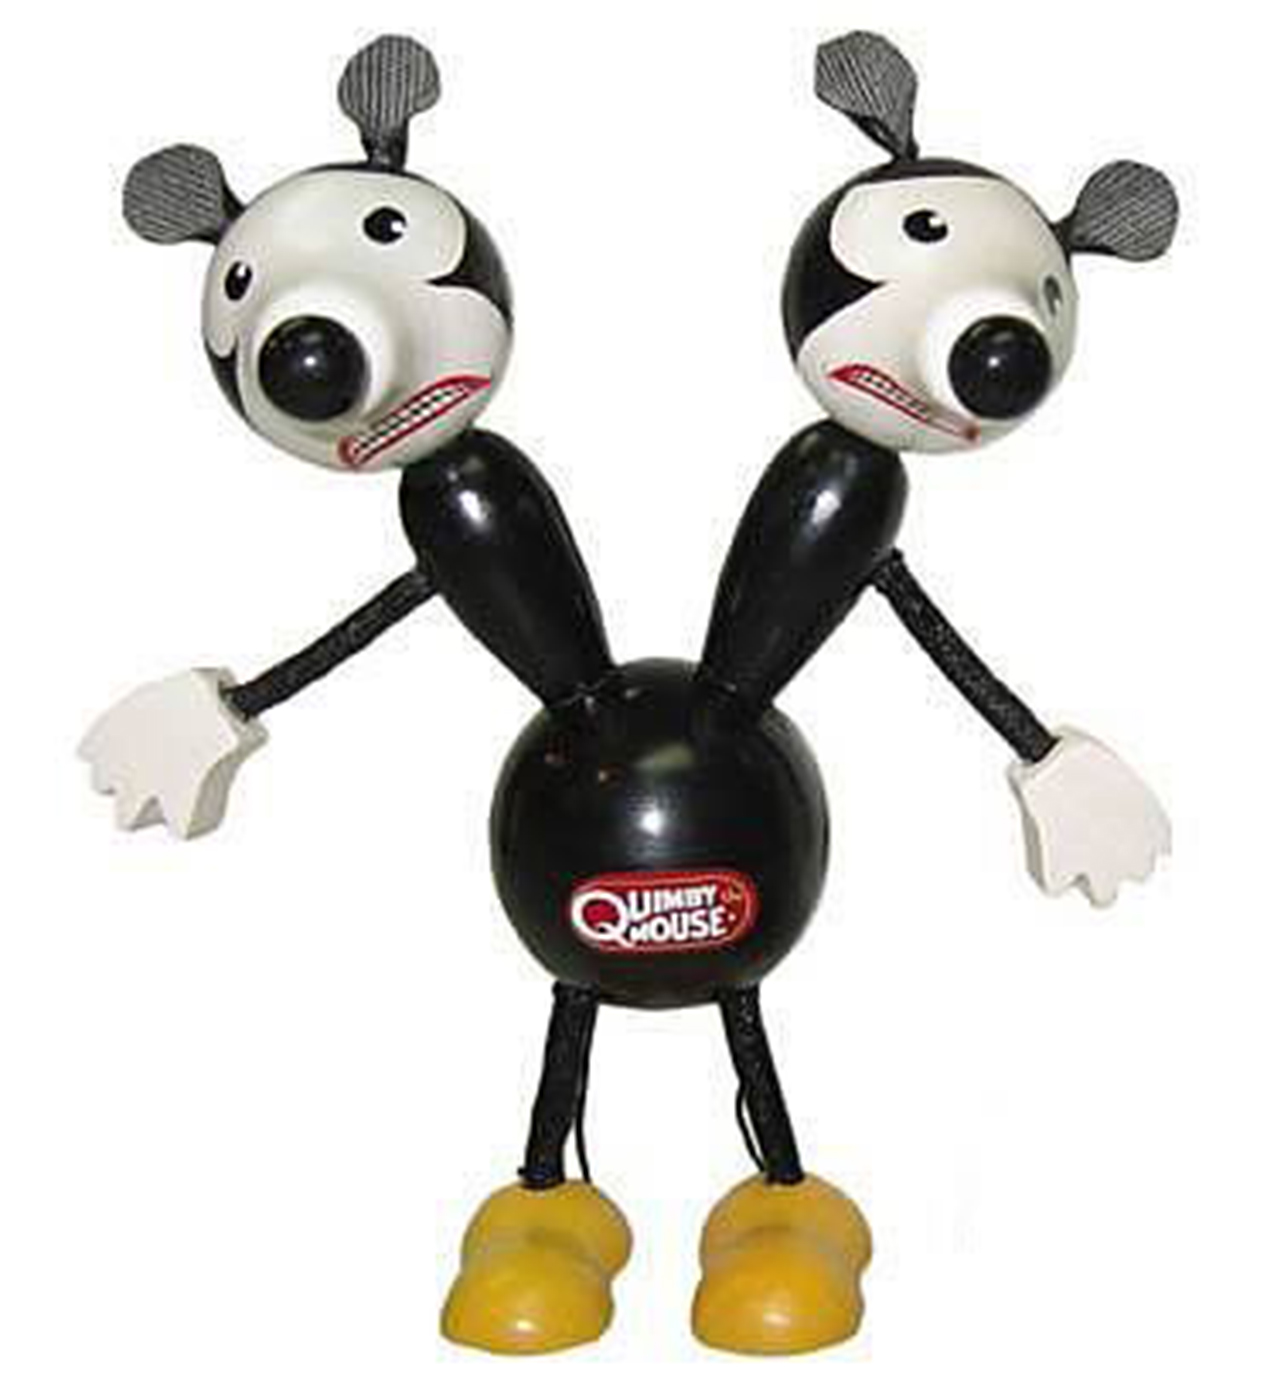 "Quimby The Mouse 6"" Wooden Toy"